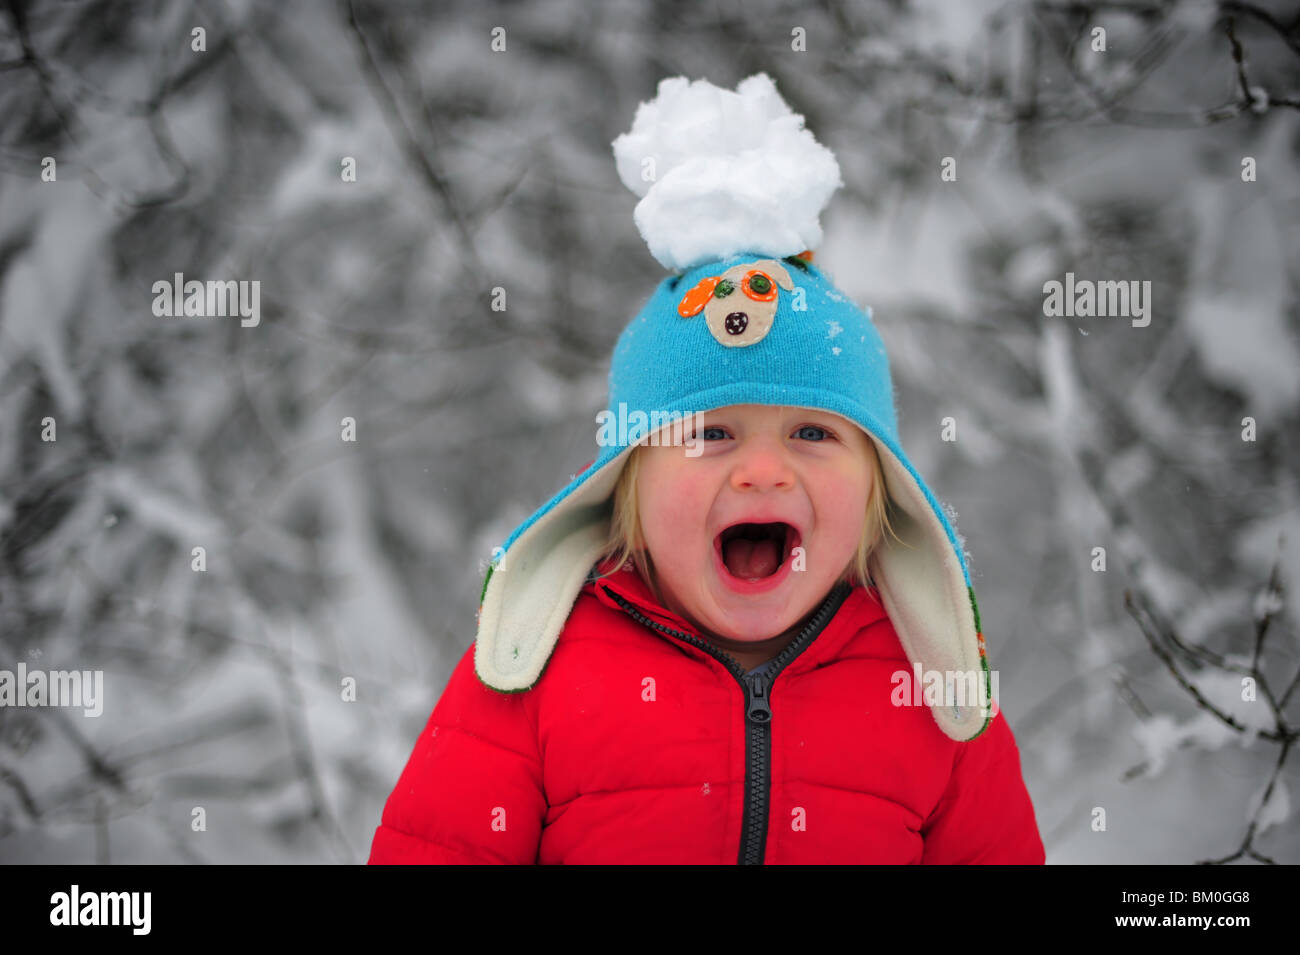 a young boy playing in the winter snow with a giant snowball on top his hat bobble hat - Stock Image